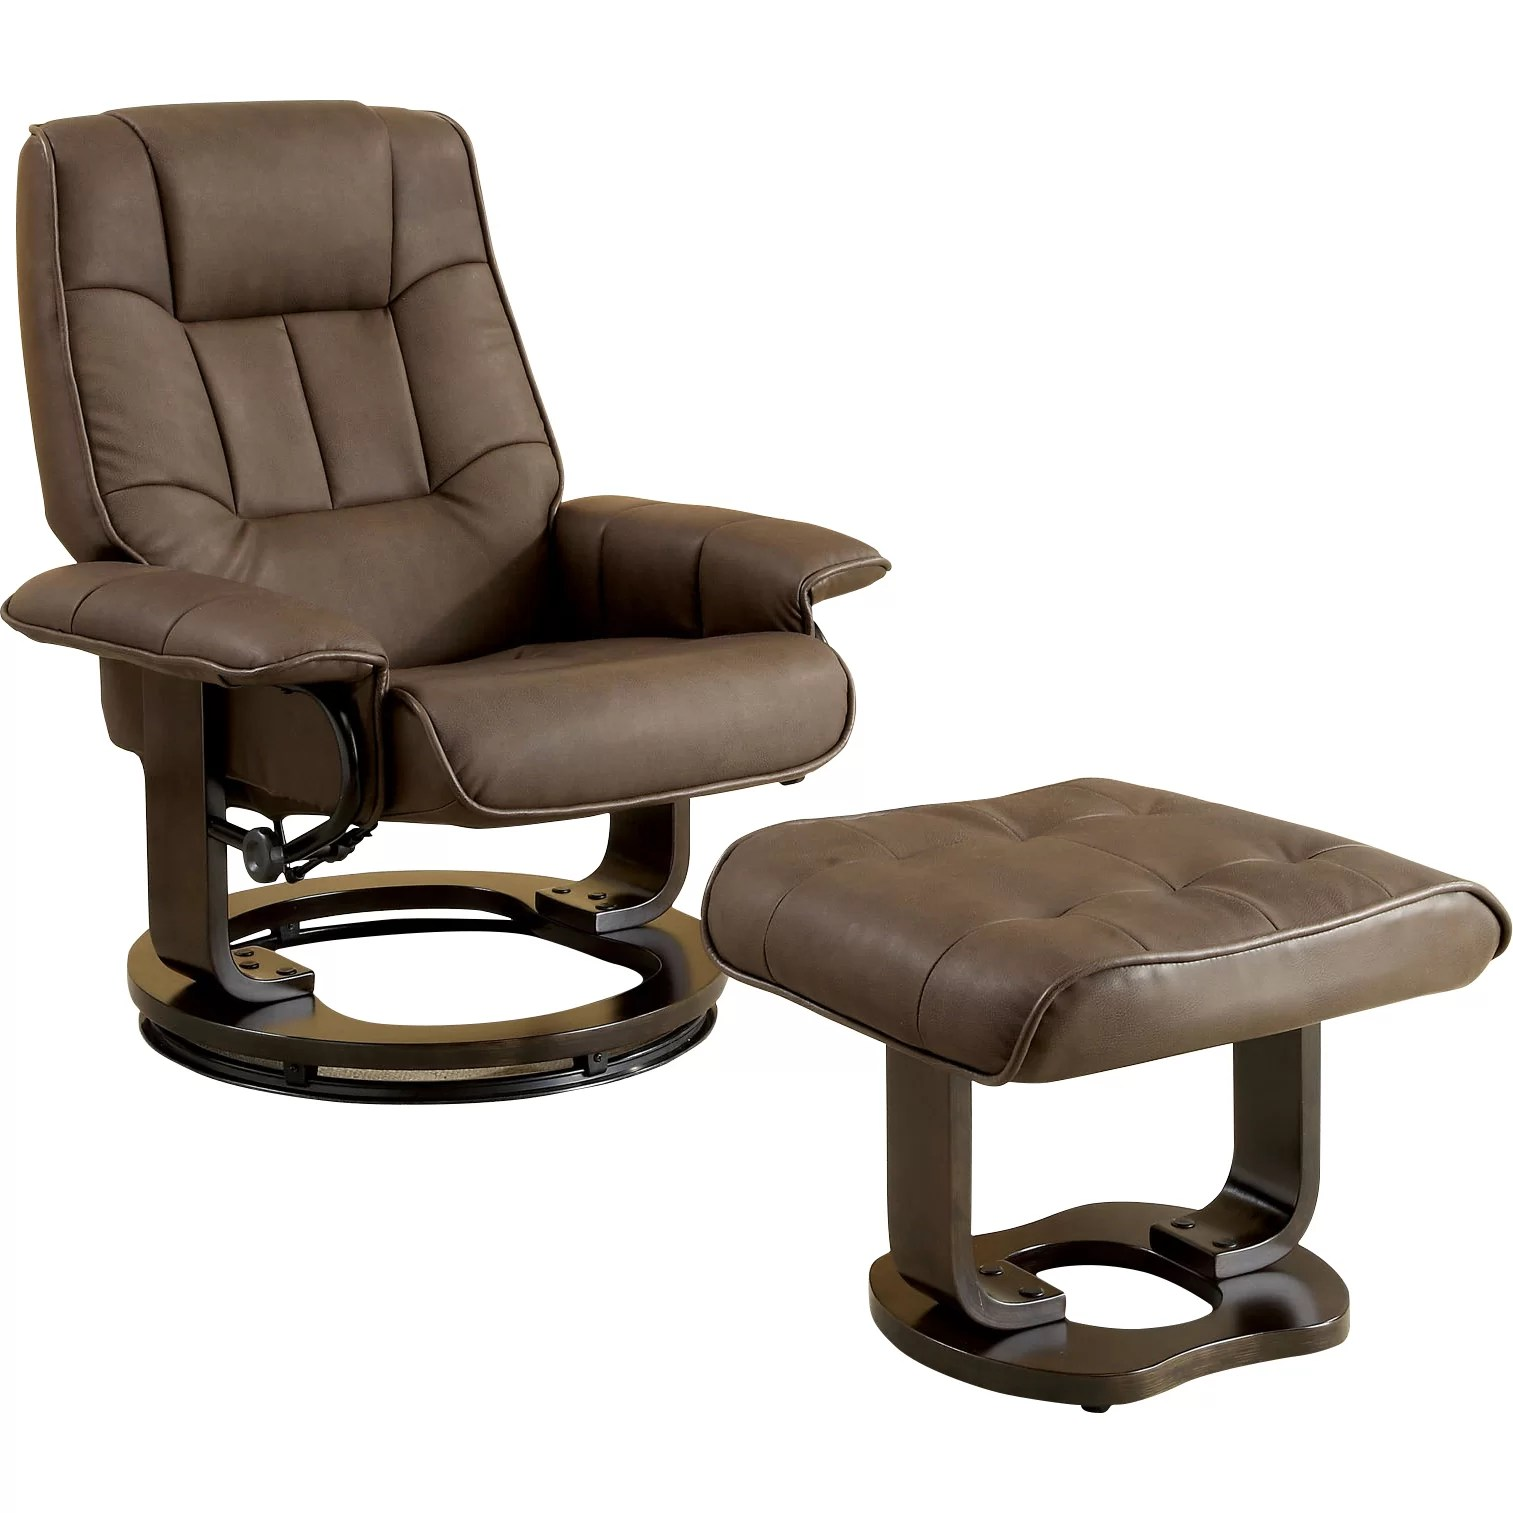 chair and a half rocker with ottoman comfortable rocking for nursing hokku designs leatherette swivel recliner